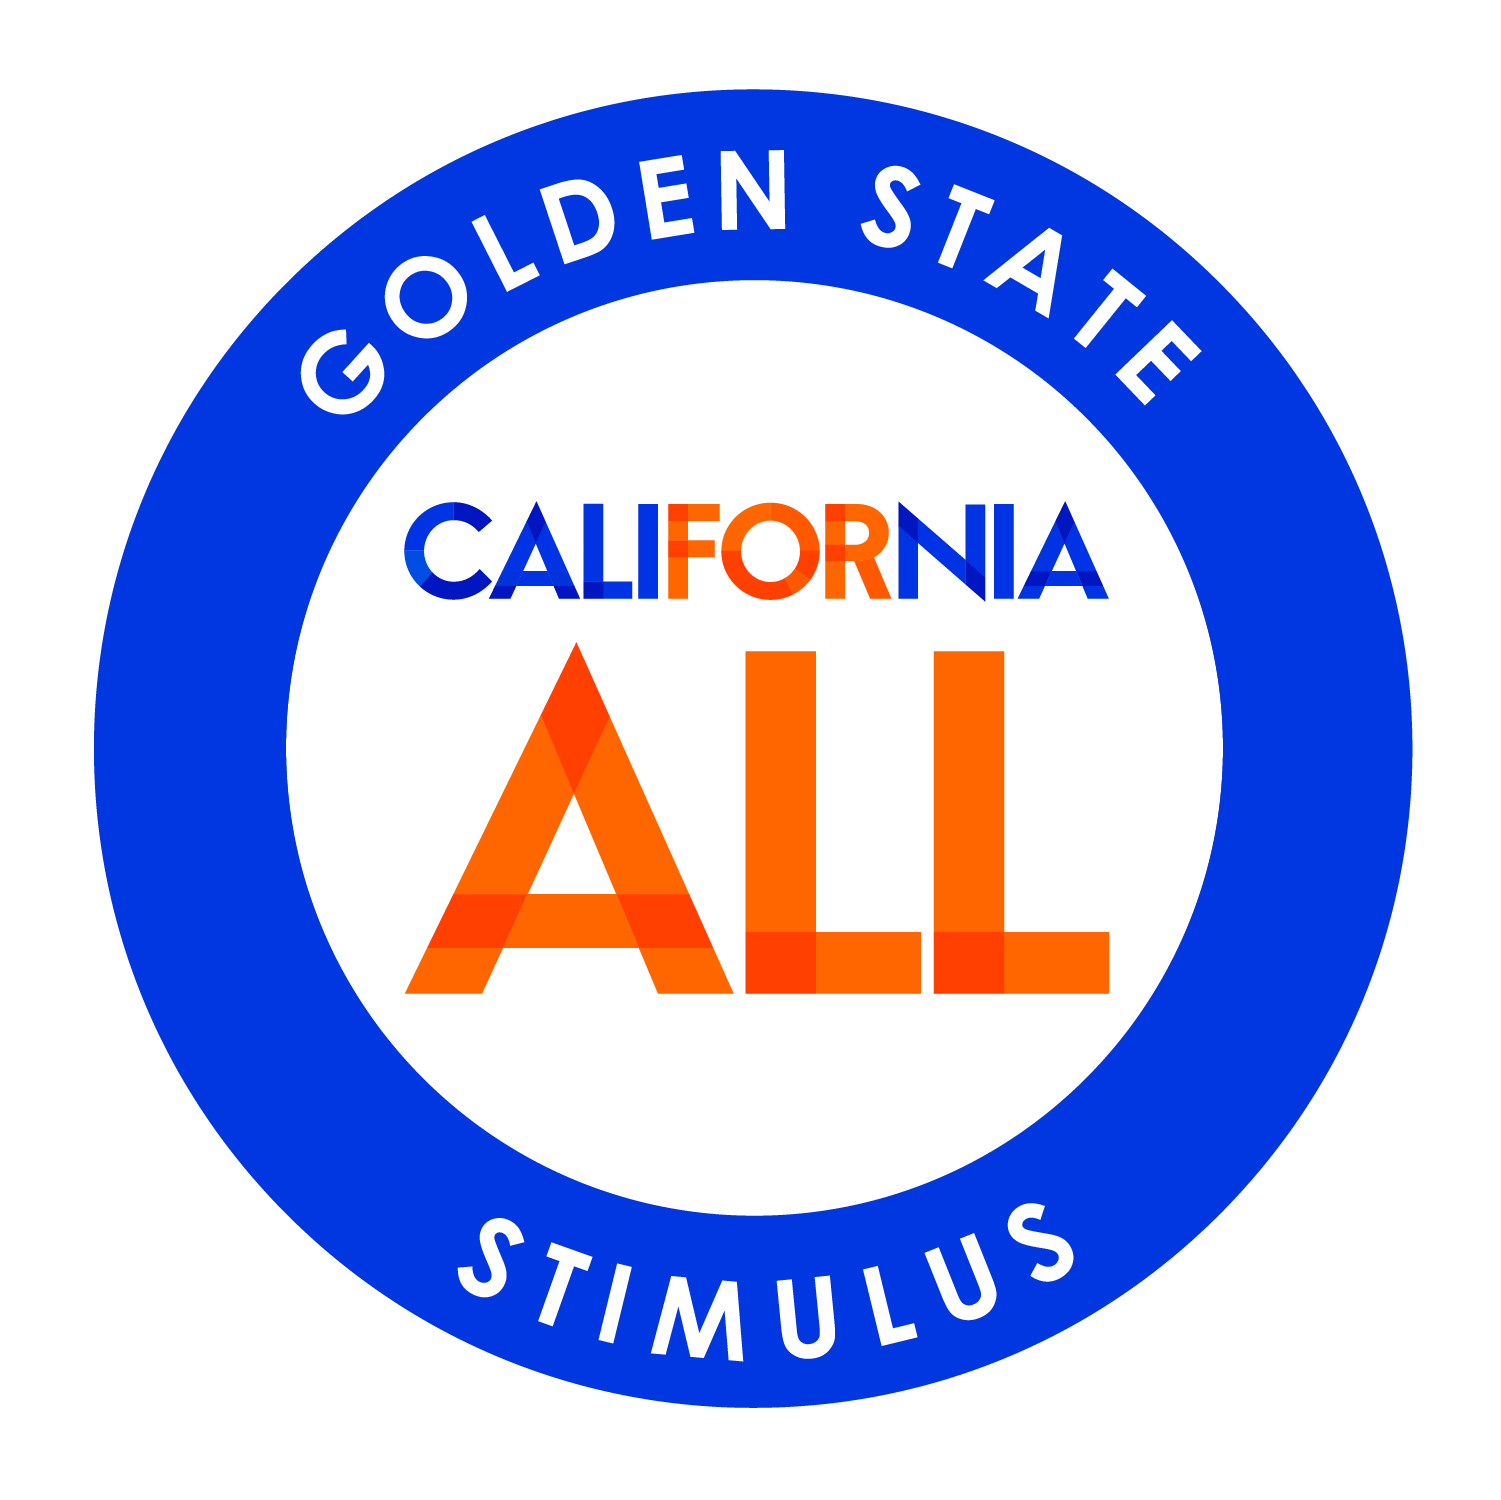 """""""Circle seal, blue border, white center. In blue border, """"Golden State Stimulus. In the white center, California ALL logo. The """"for"""" in California is orange and the """"All"""" is orange. The """"Cali"""" and """"Nia"""" in California is blue."""""""""""